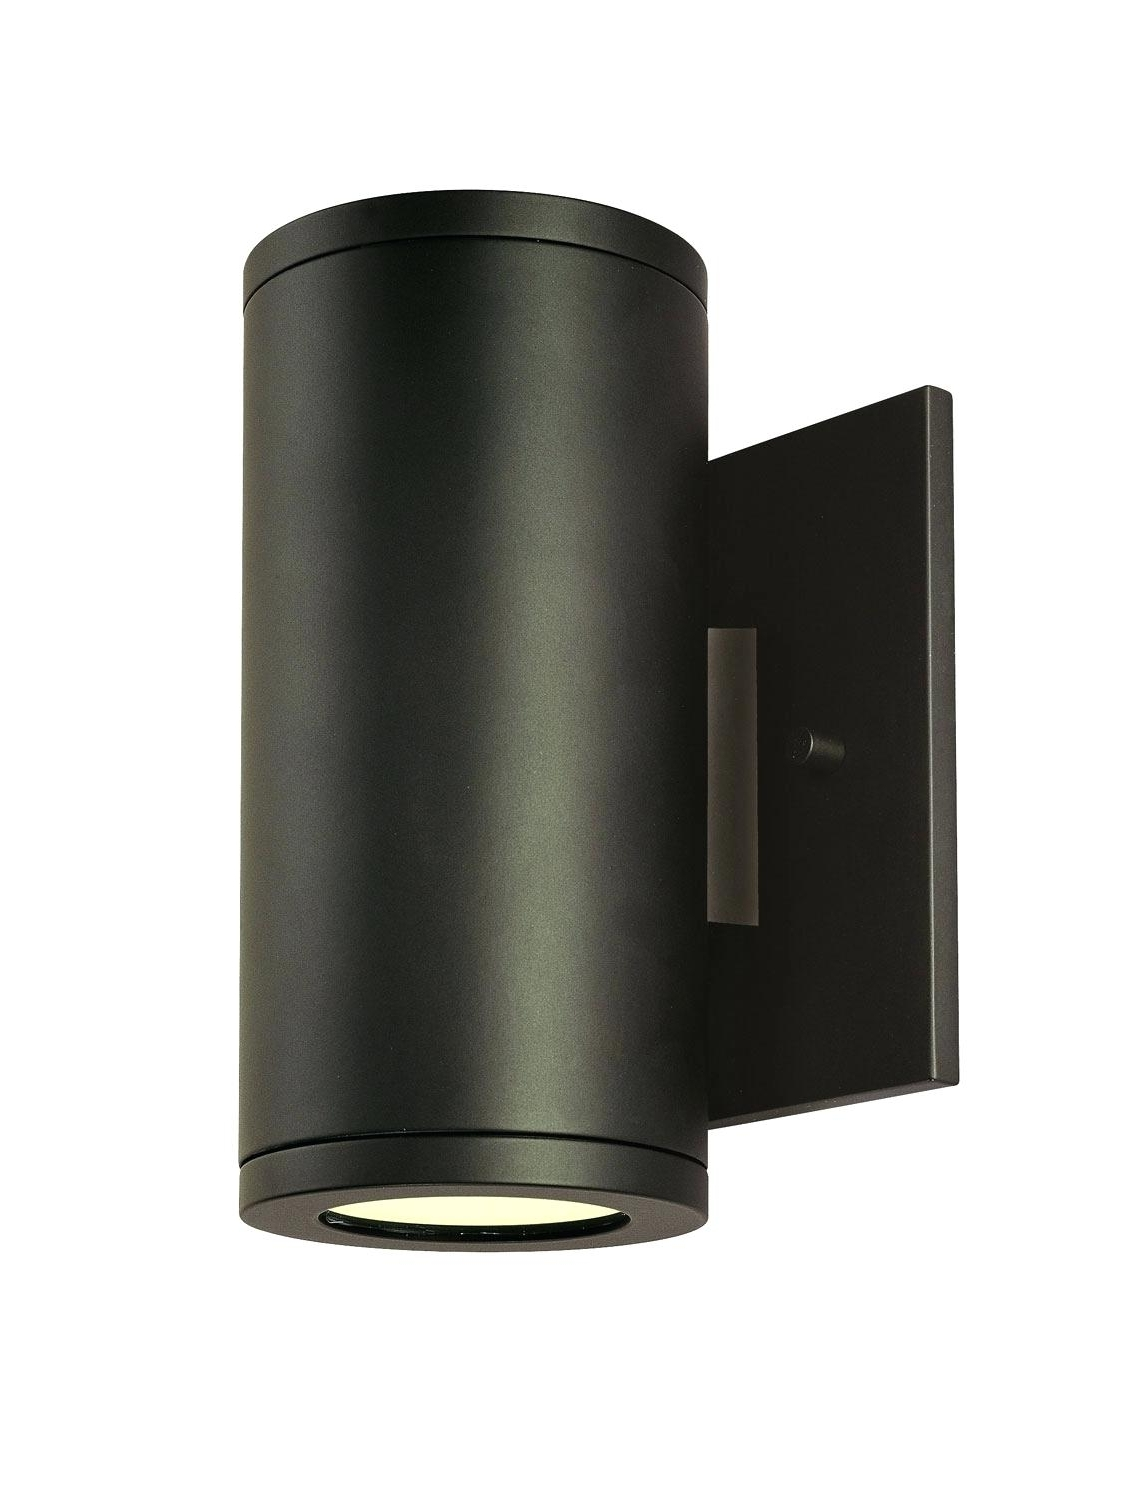 Popular Outdoor Wall Lamp S Lamps Home Depot Lights Amazon Motion Sensor Throughout Outdoor Wall Lighting At Amazon (View 15 of 20)